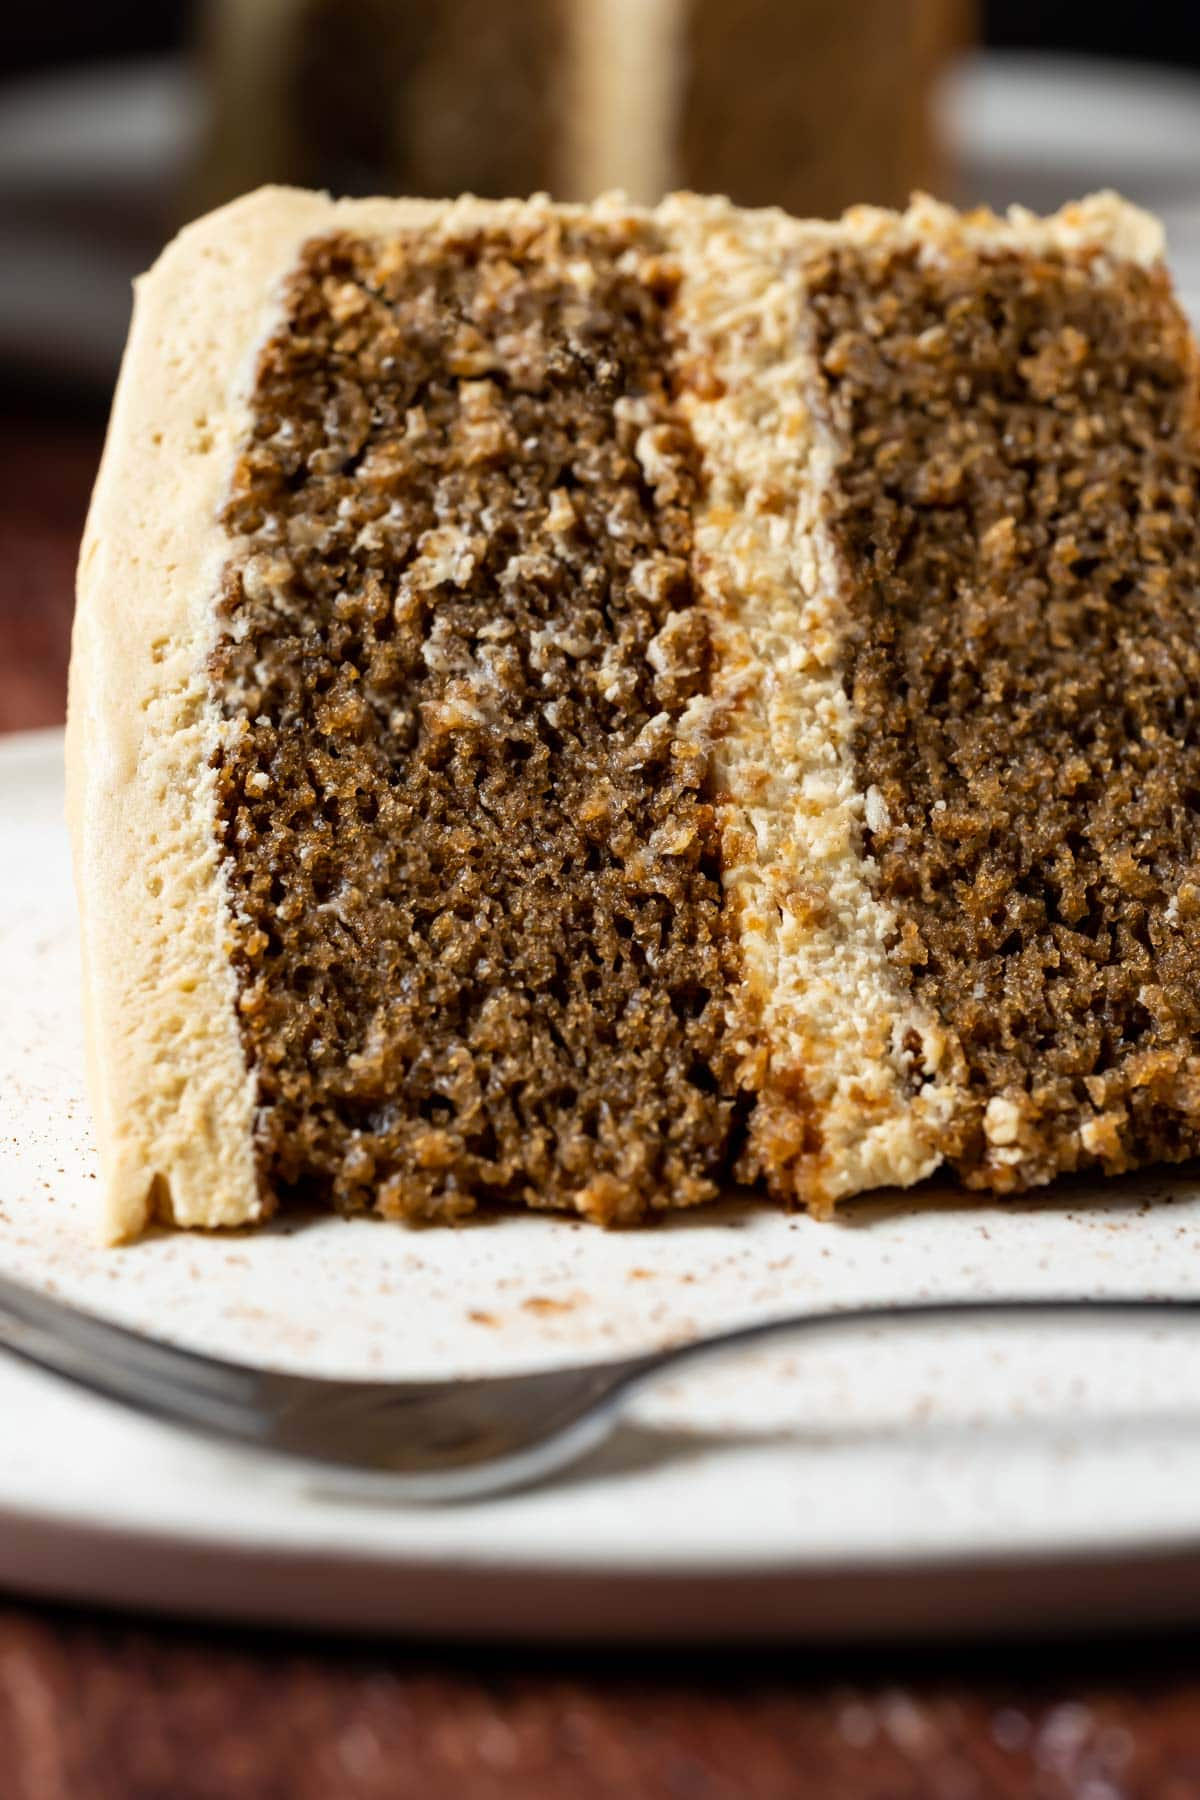 Slice of eggless coffee cake on a white plate with a cake fork.